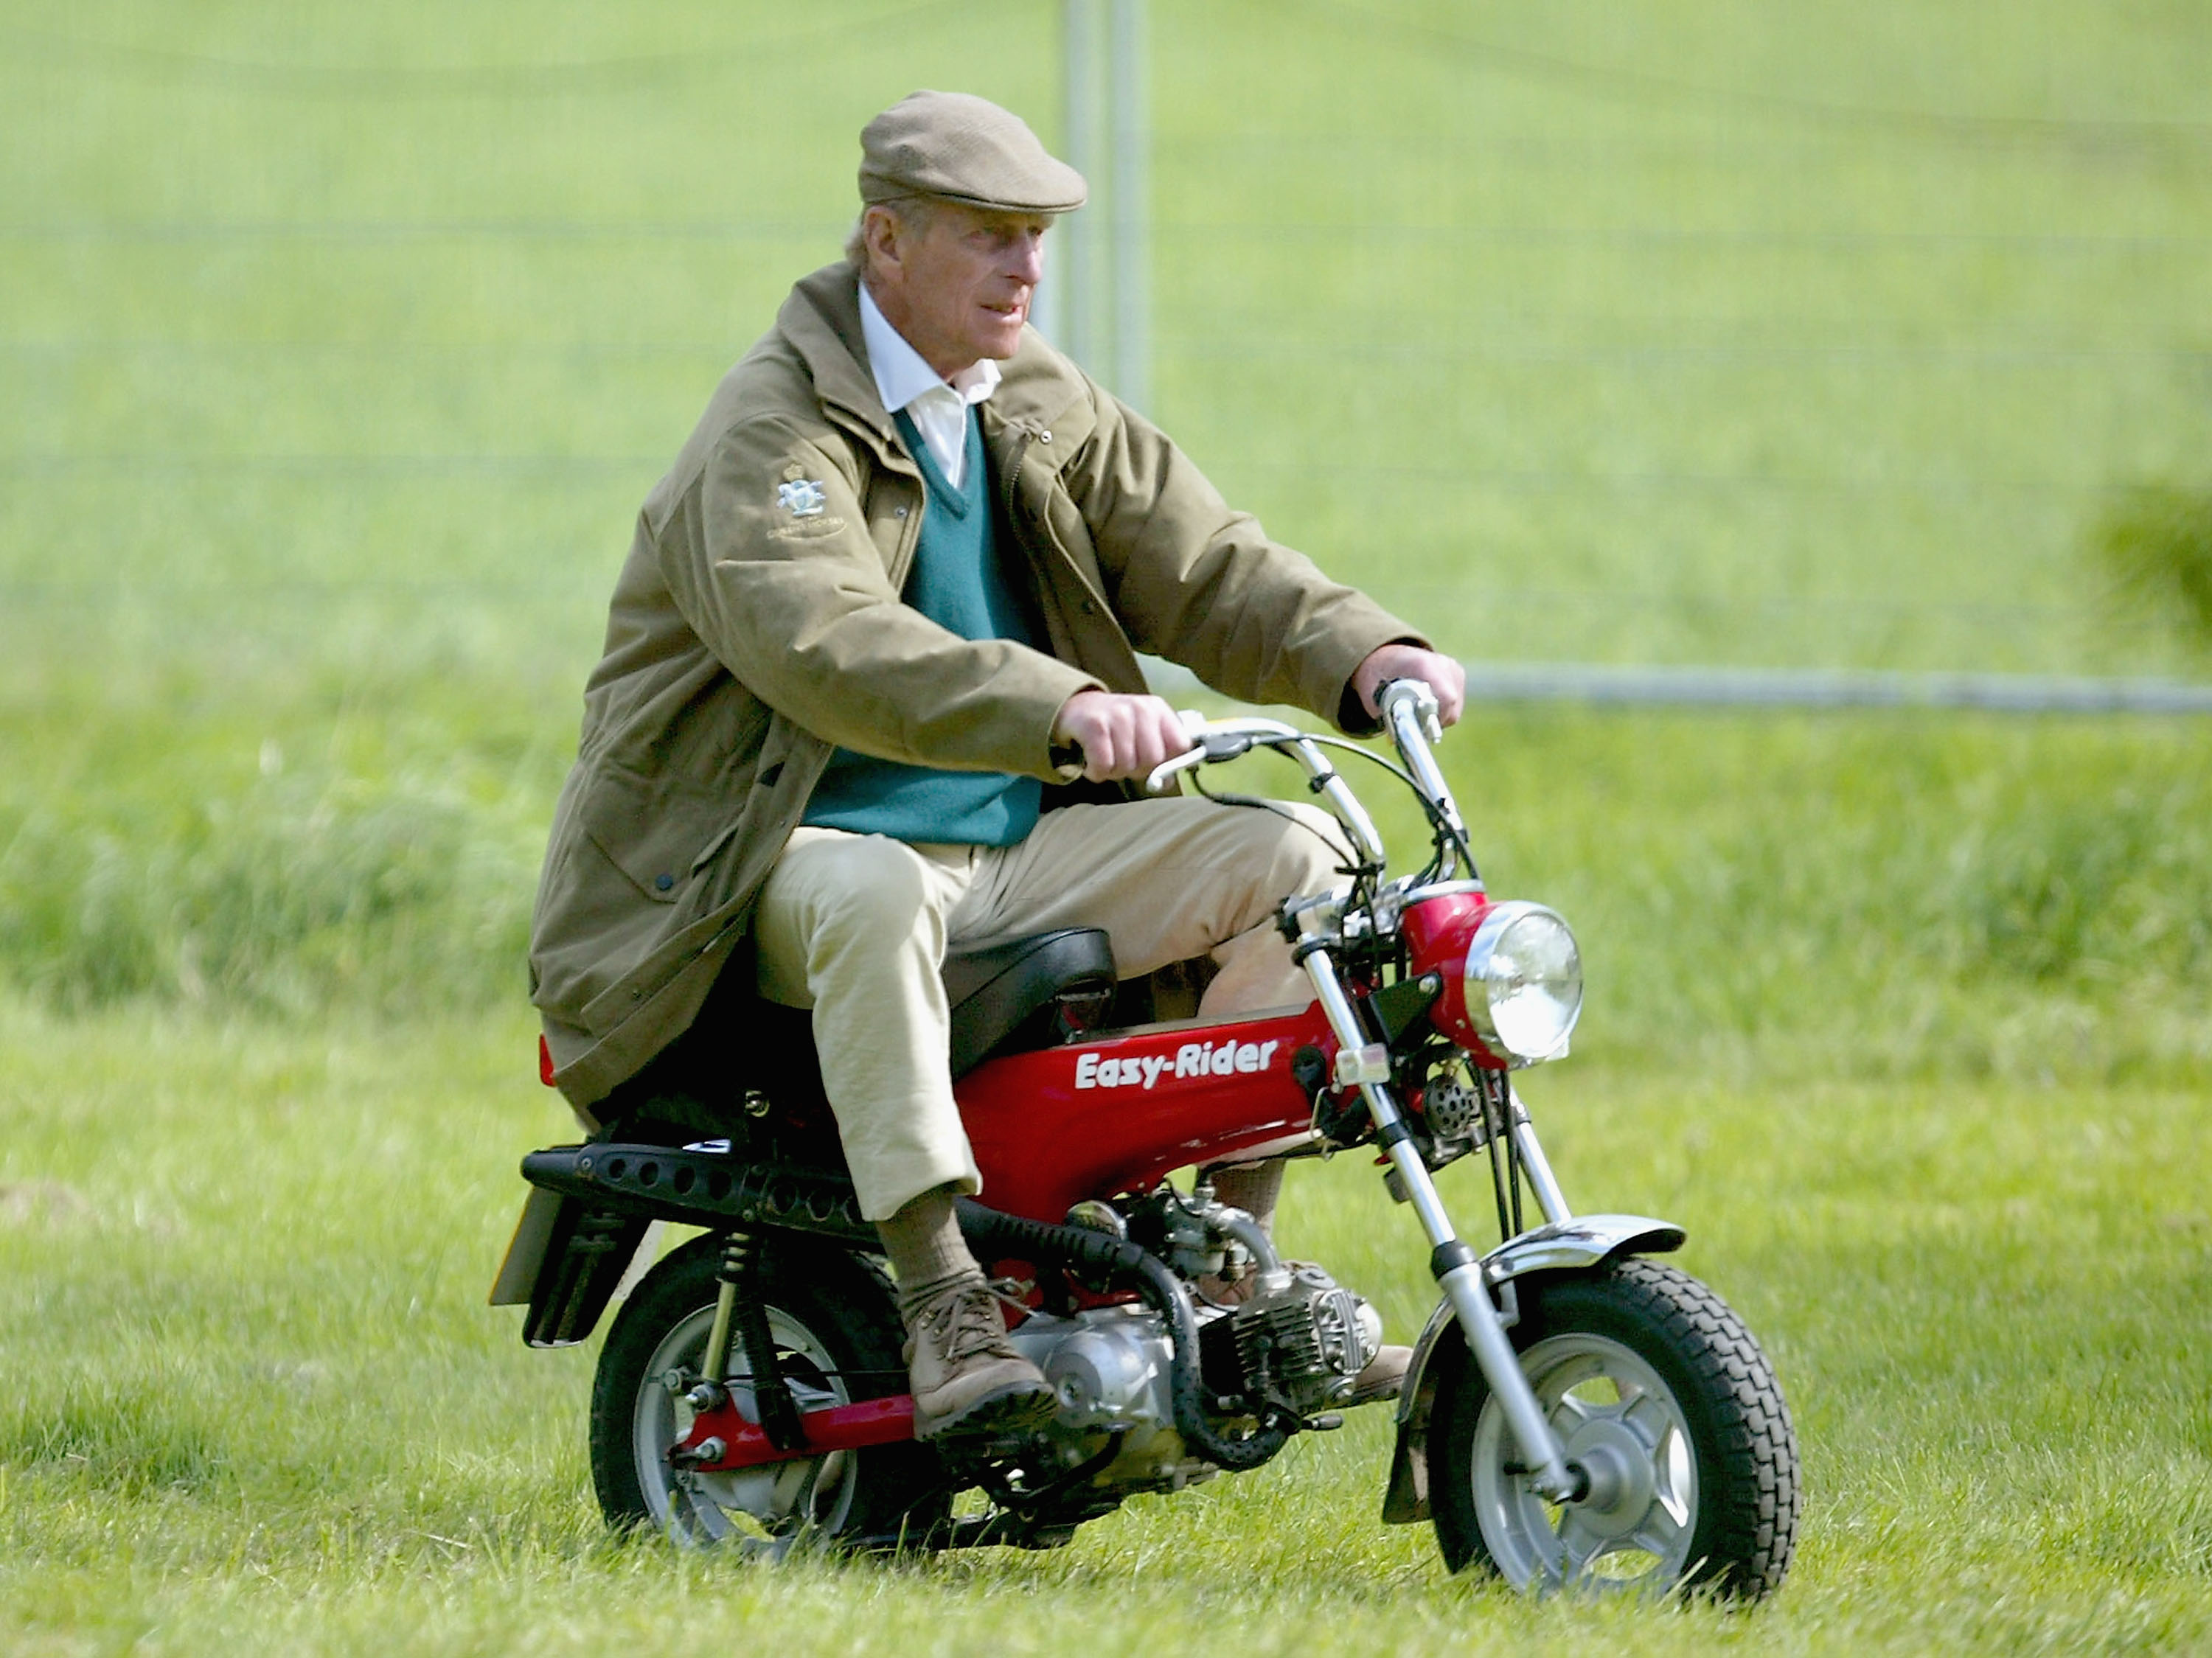 Royal Windsor Horse Show - Day TwoWINDSOR, ENGLAND - MAY 13: HRH The Duke of Edinburgh rides on his mini motorbike during the Royal Windsor Horse Show at Home Park, Windsor Castle on May 13, 2005 in Windsor, England.